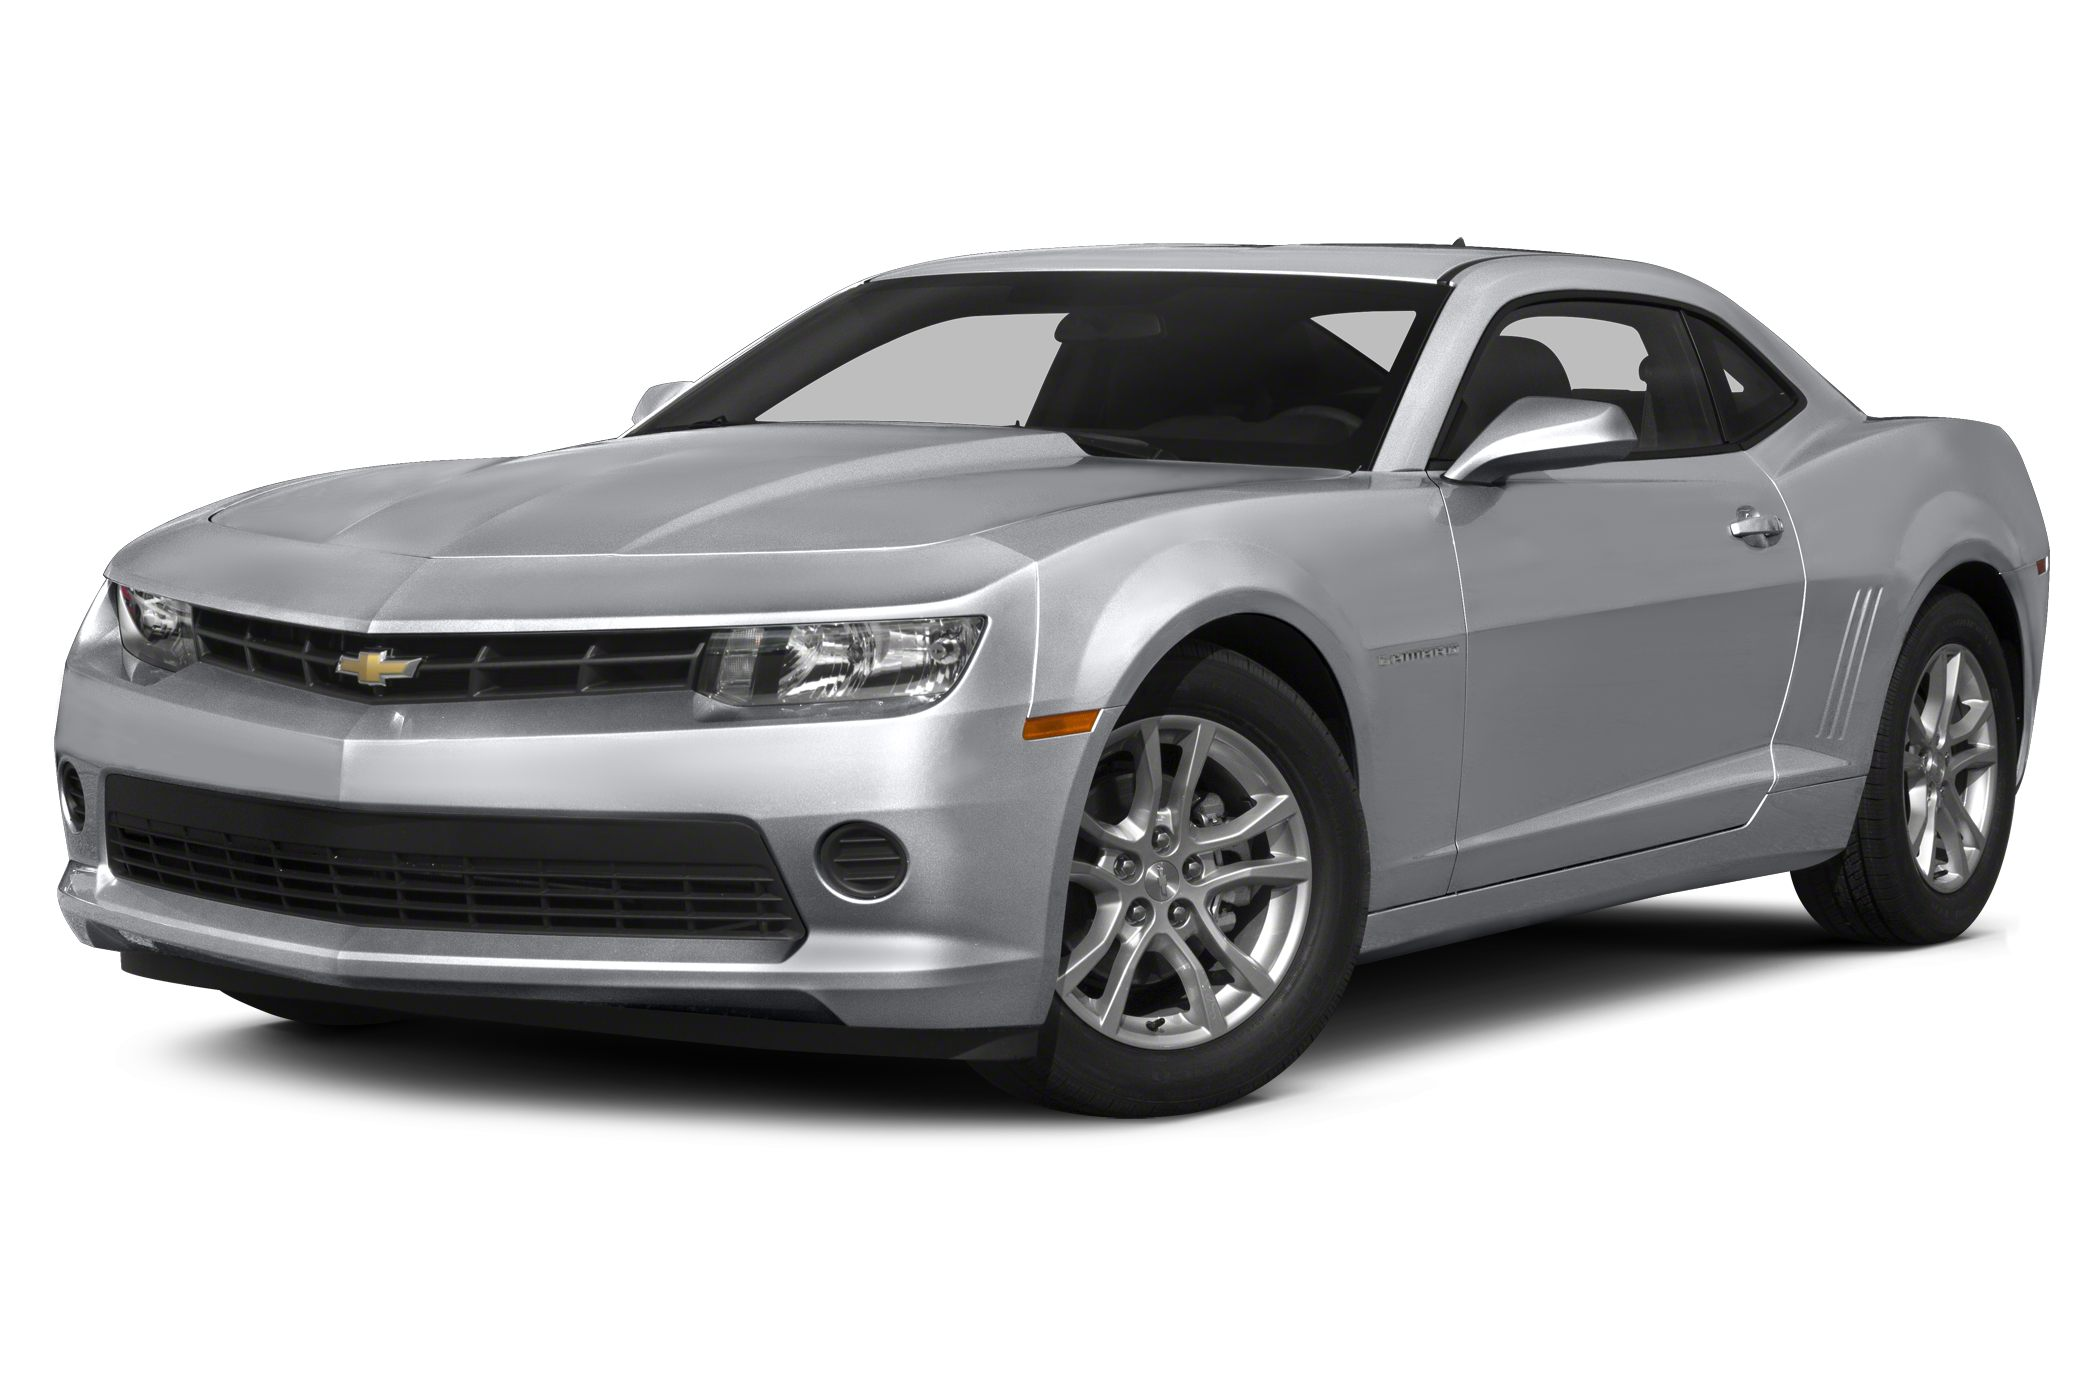 2015 Chevrolet Camaro 2LT Coupe for sale in Westfield for $34,590 with 0 miles